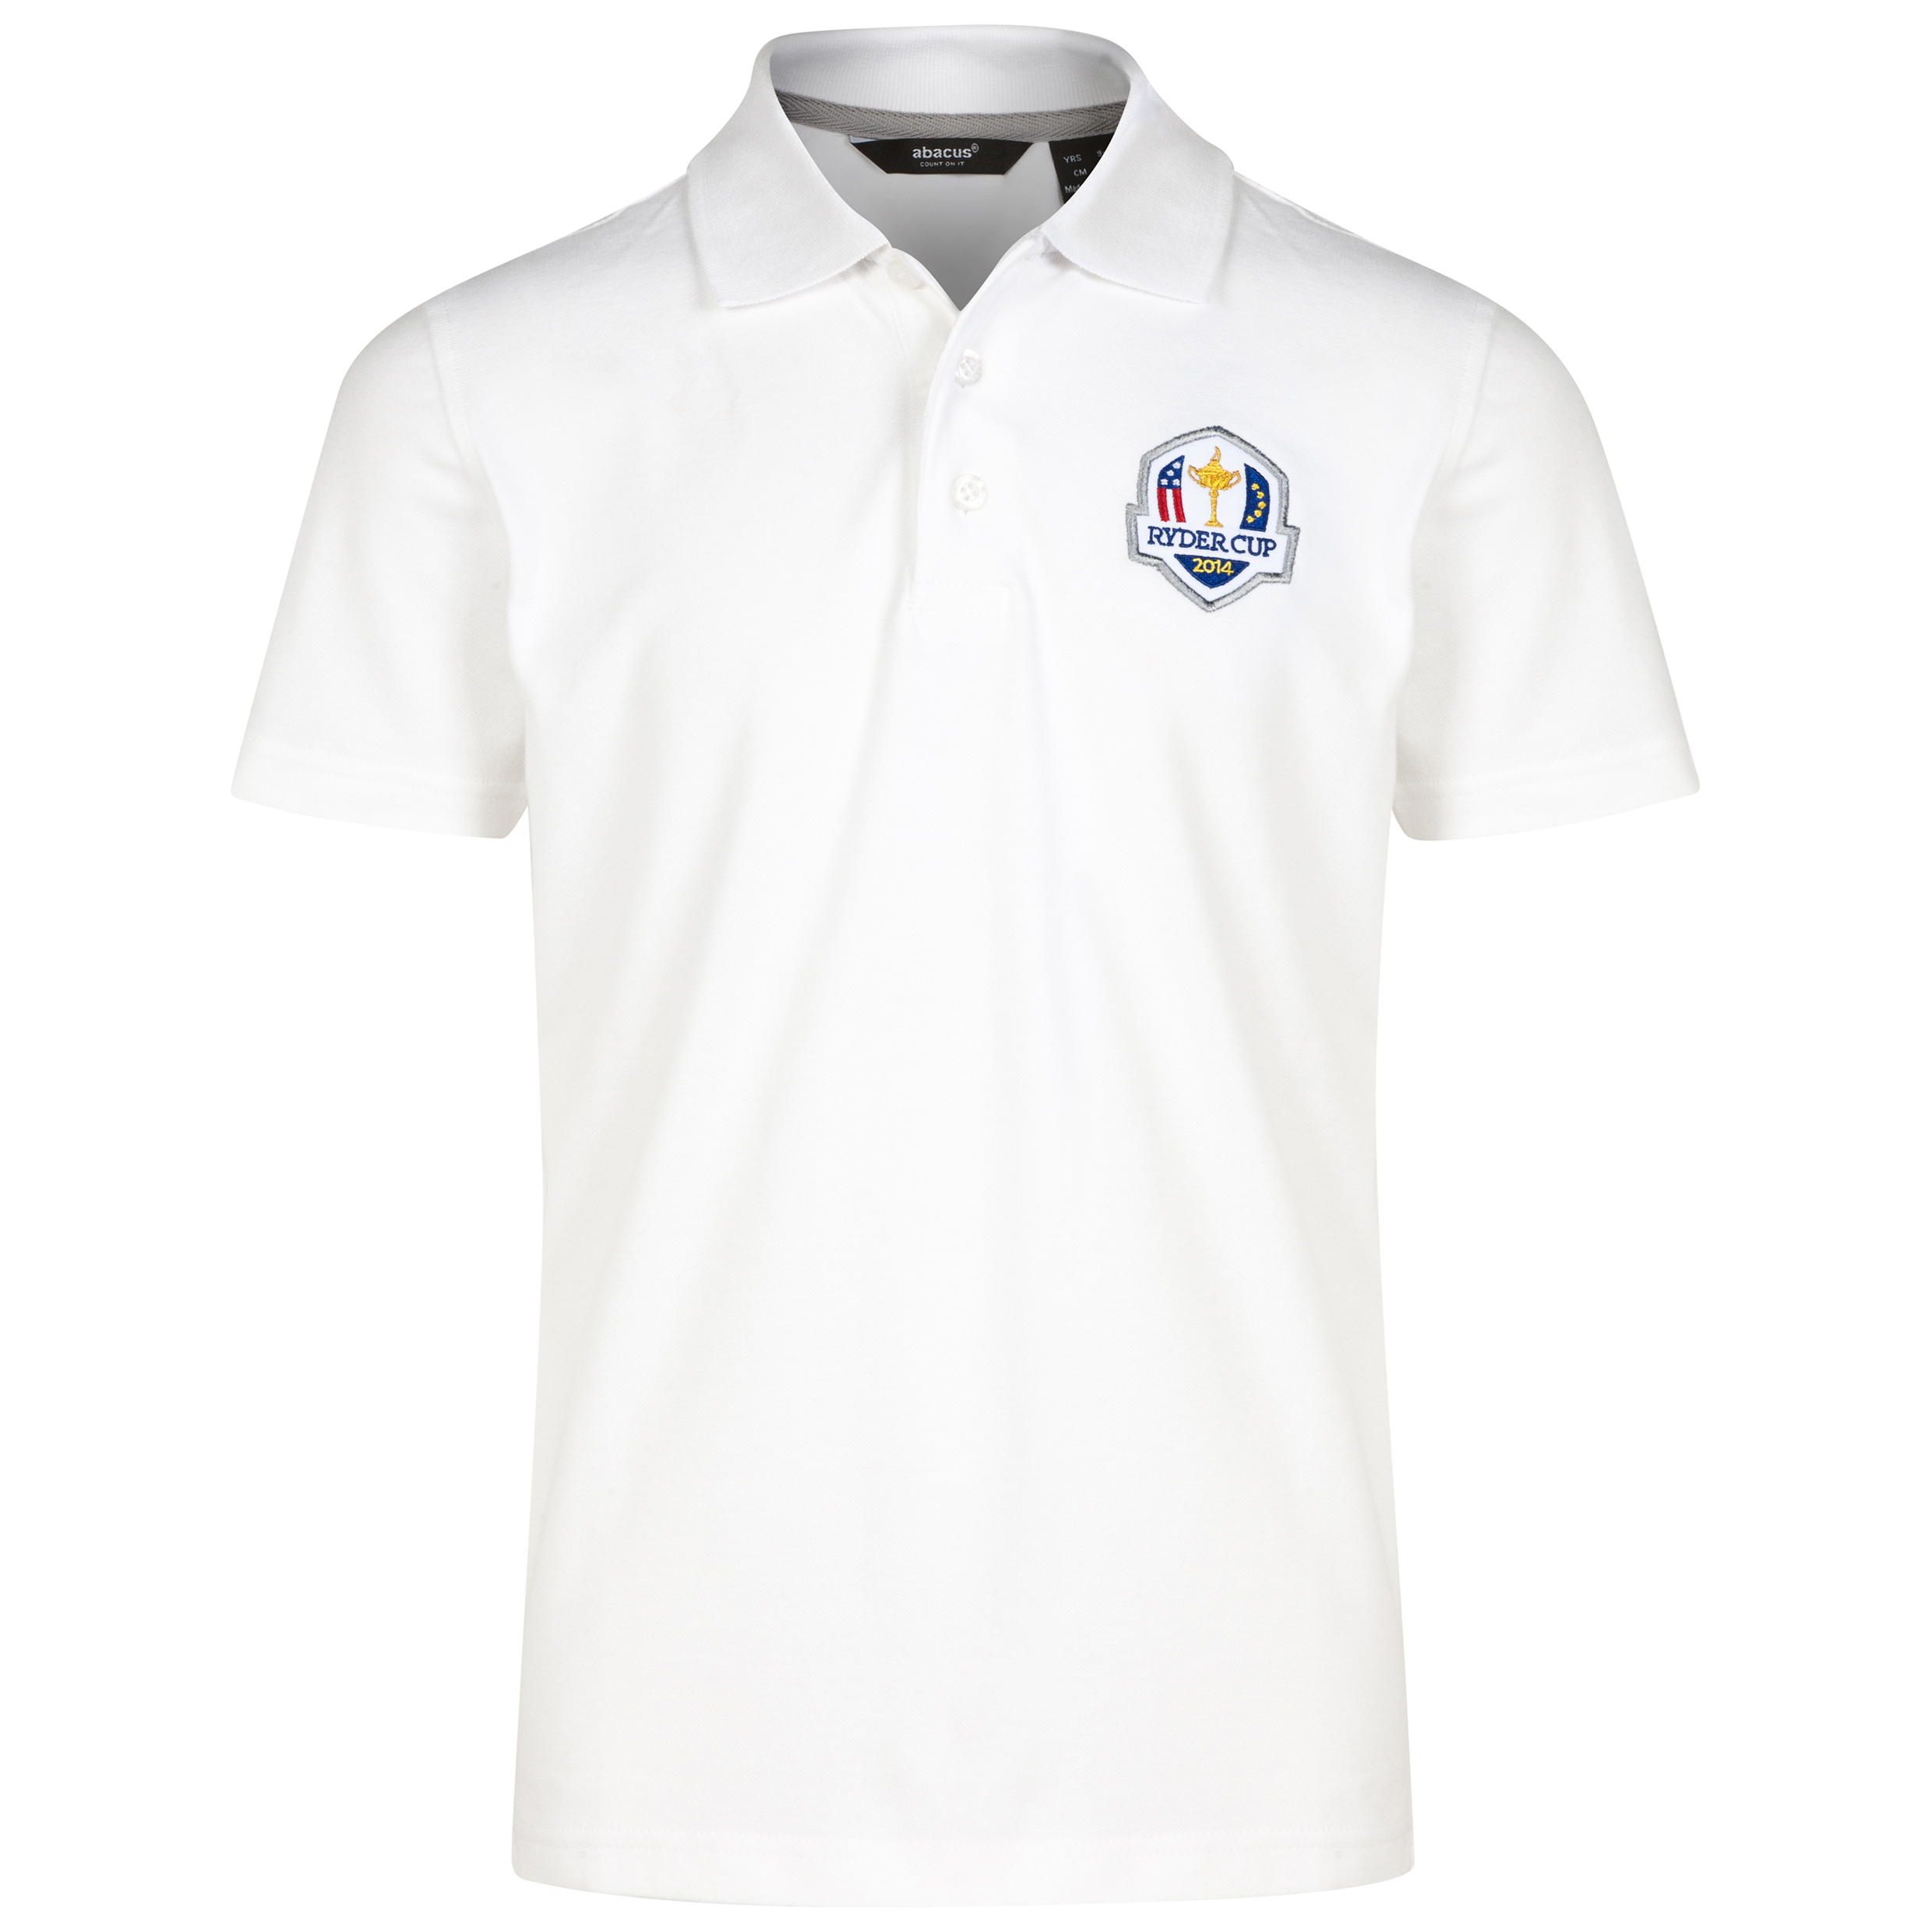 The 2014 Ryder Cup abacus Junior Cedlite Polo  White